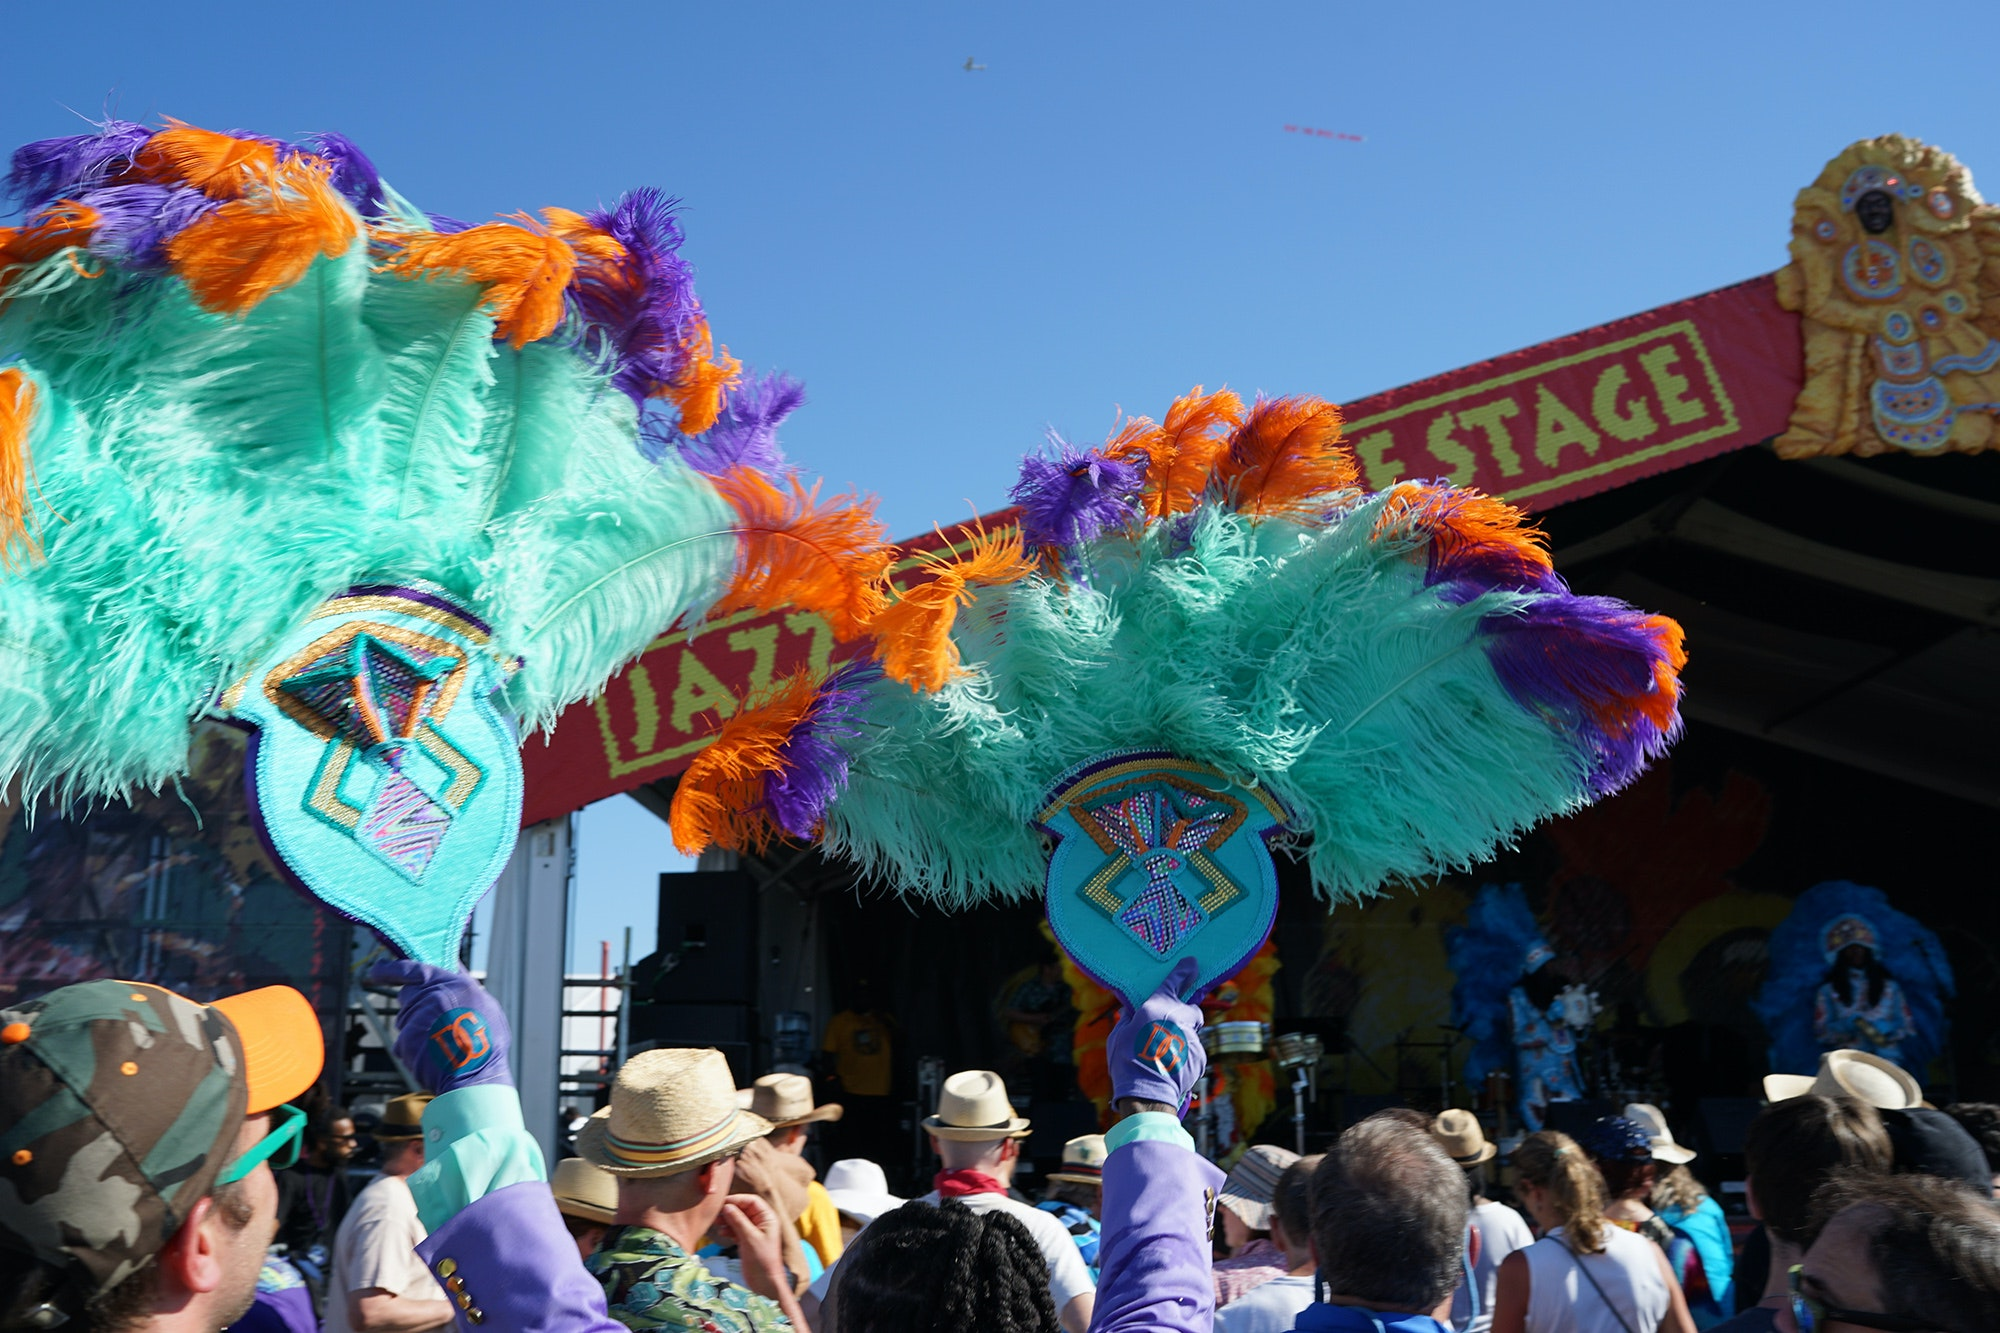 At Jazz Fest, you'll see all kinds of revelers and music fans.